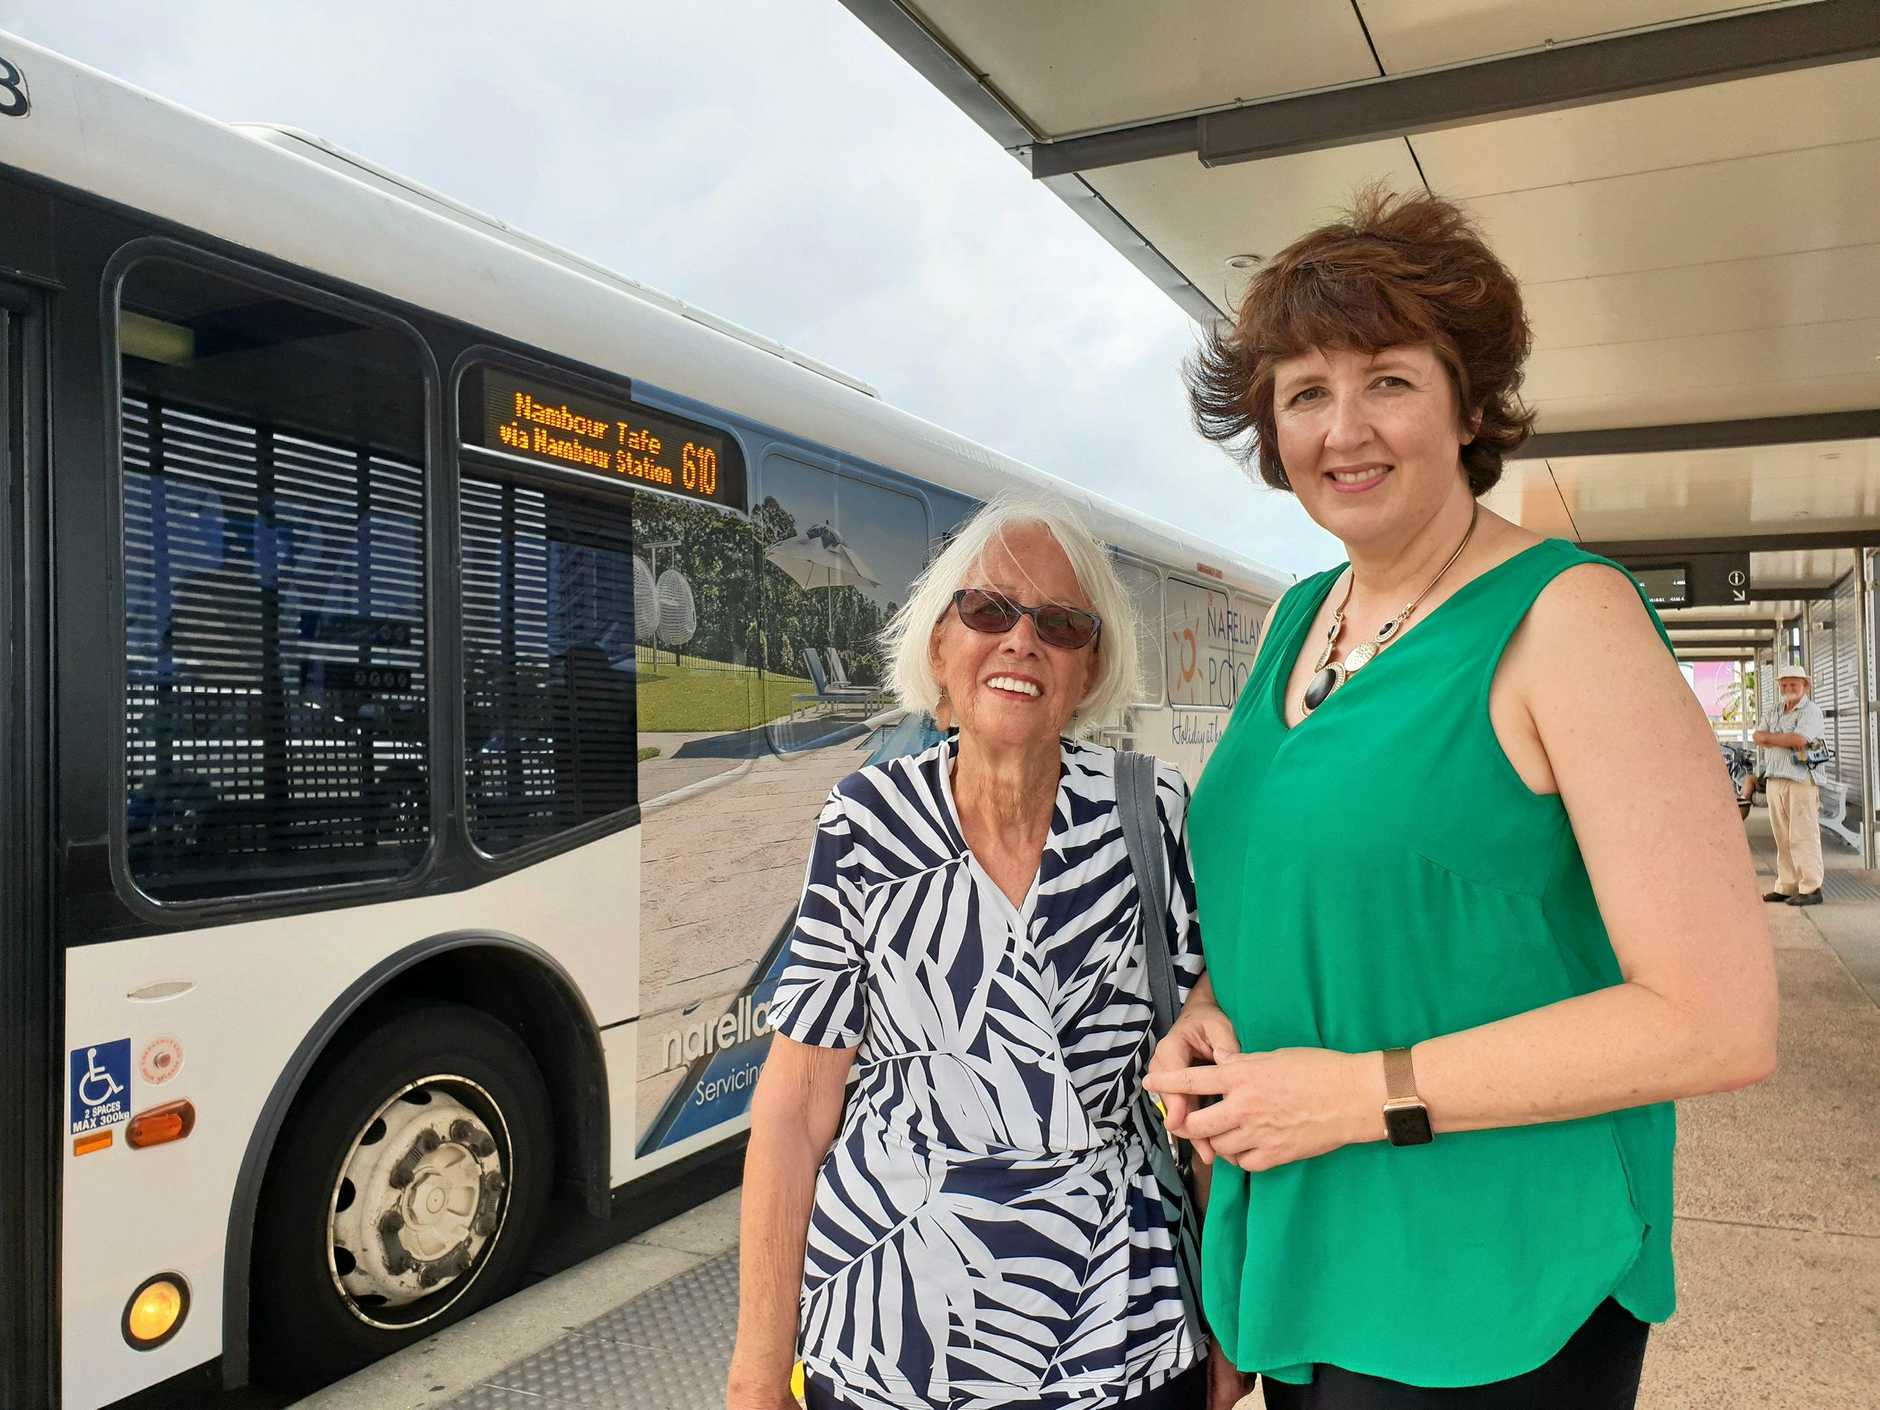 CONCERNED: Claire Cameron and Fiona Simpson want better bus safety.